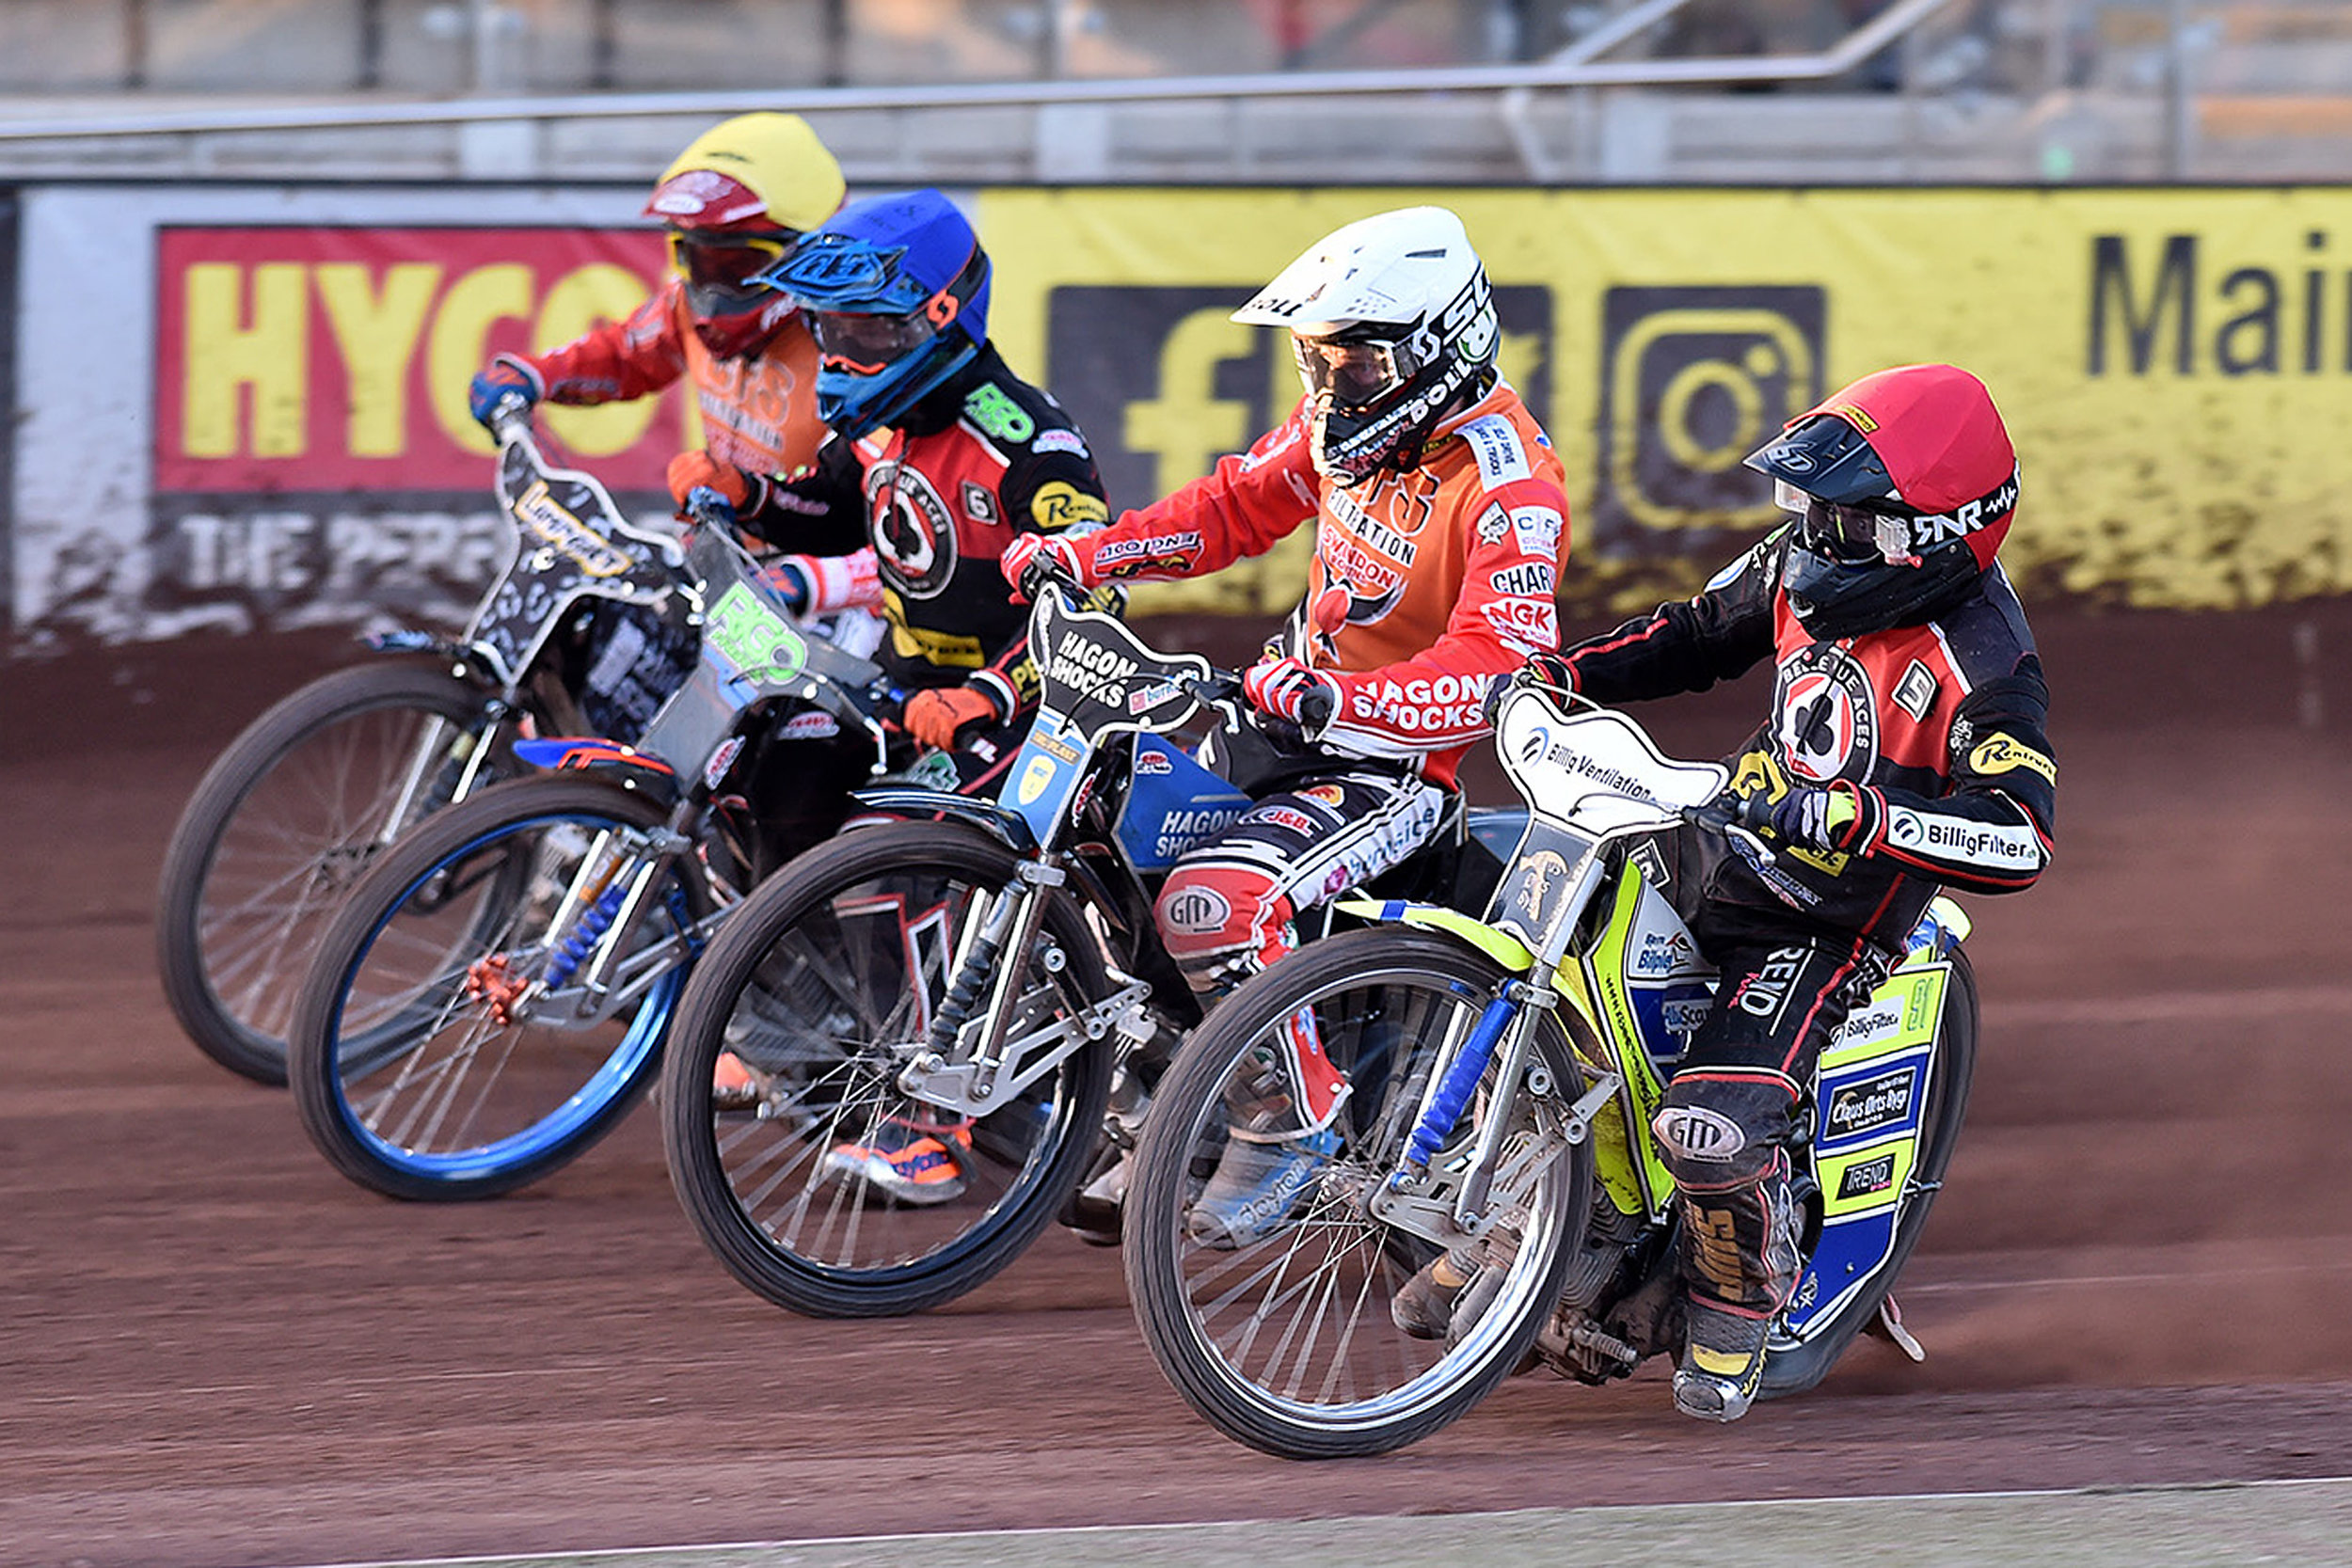 The Rentruck Aces reigned supreme over Swindon when they visited Manchester last month